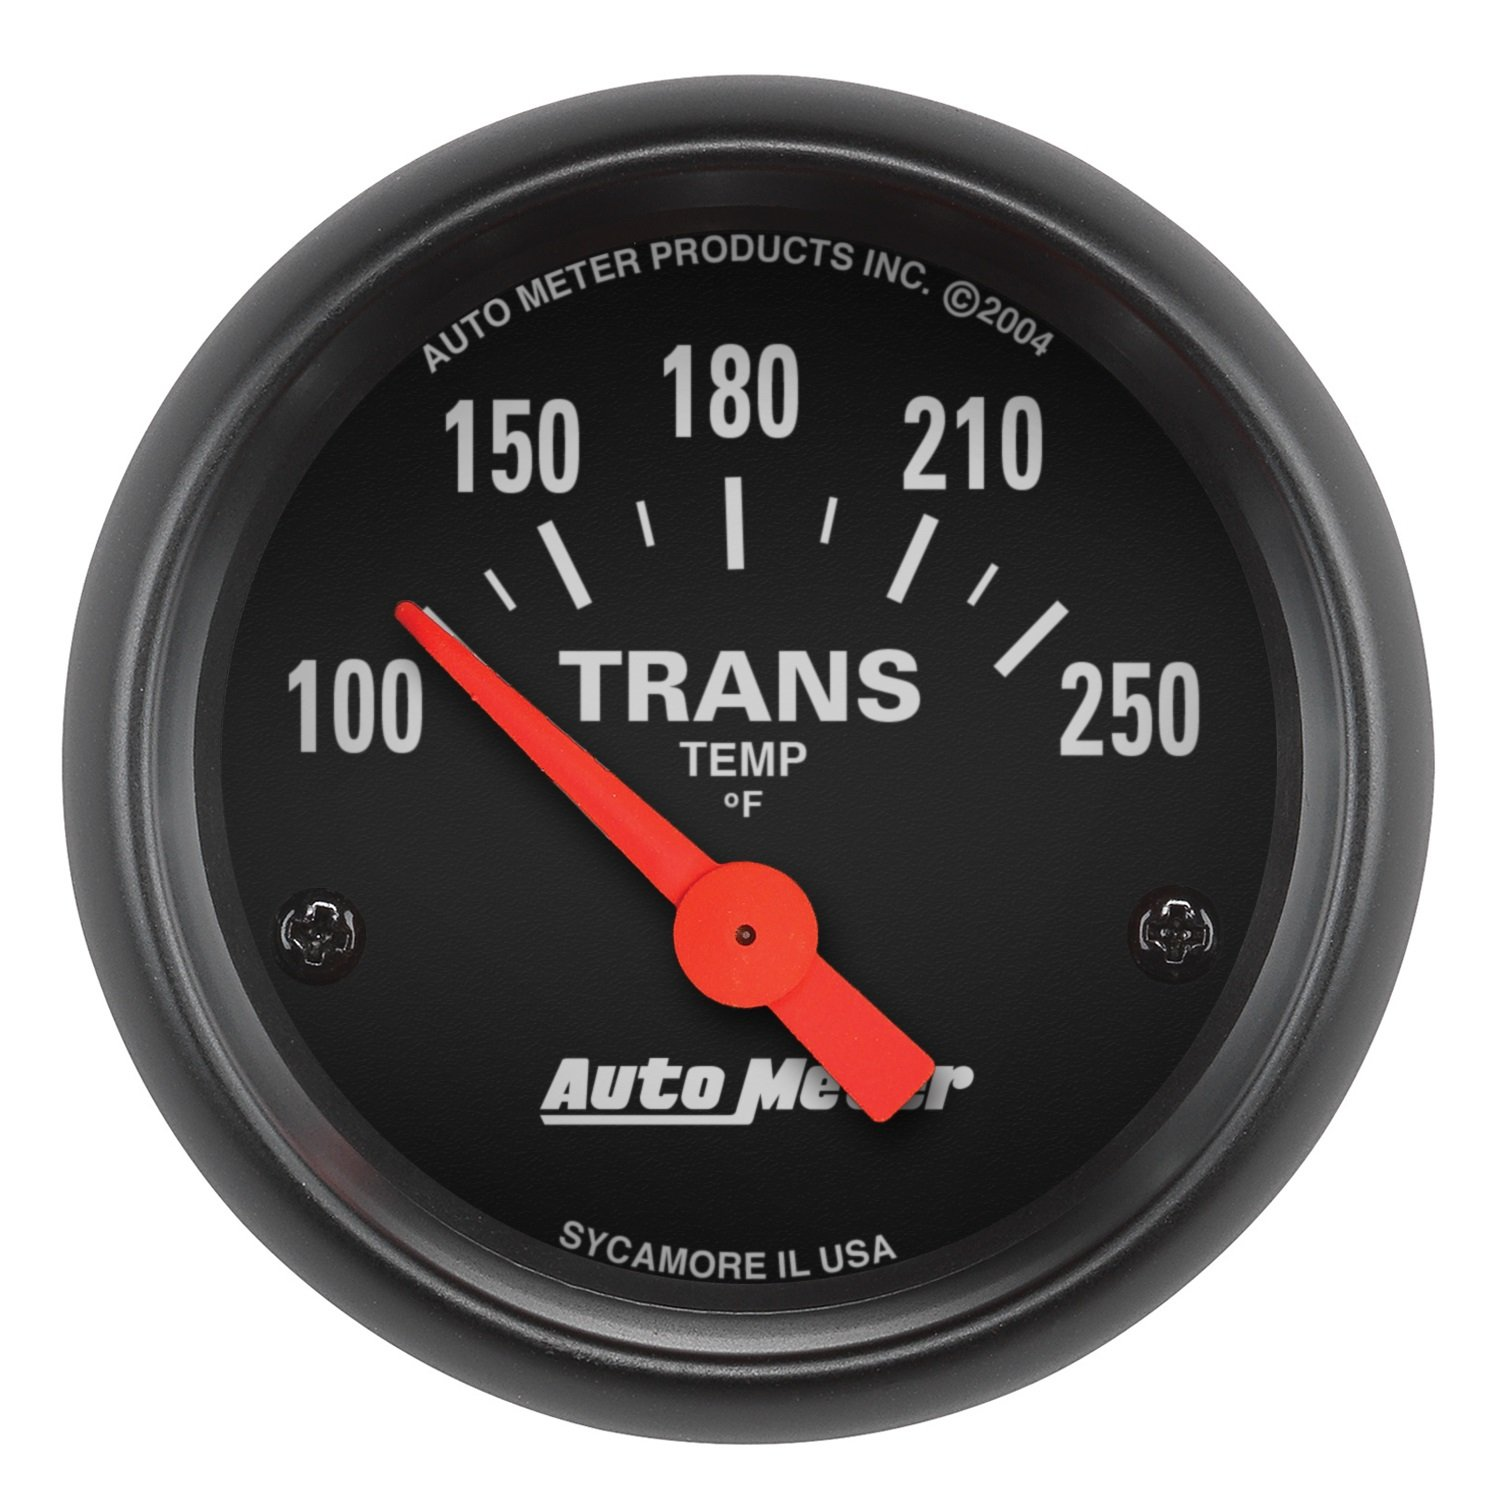 Auto Meter 2640 Z-Series Electric Transmission Temperature Gauge by Auto Meter